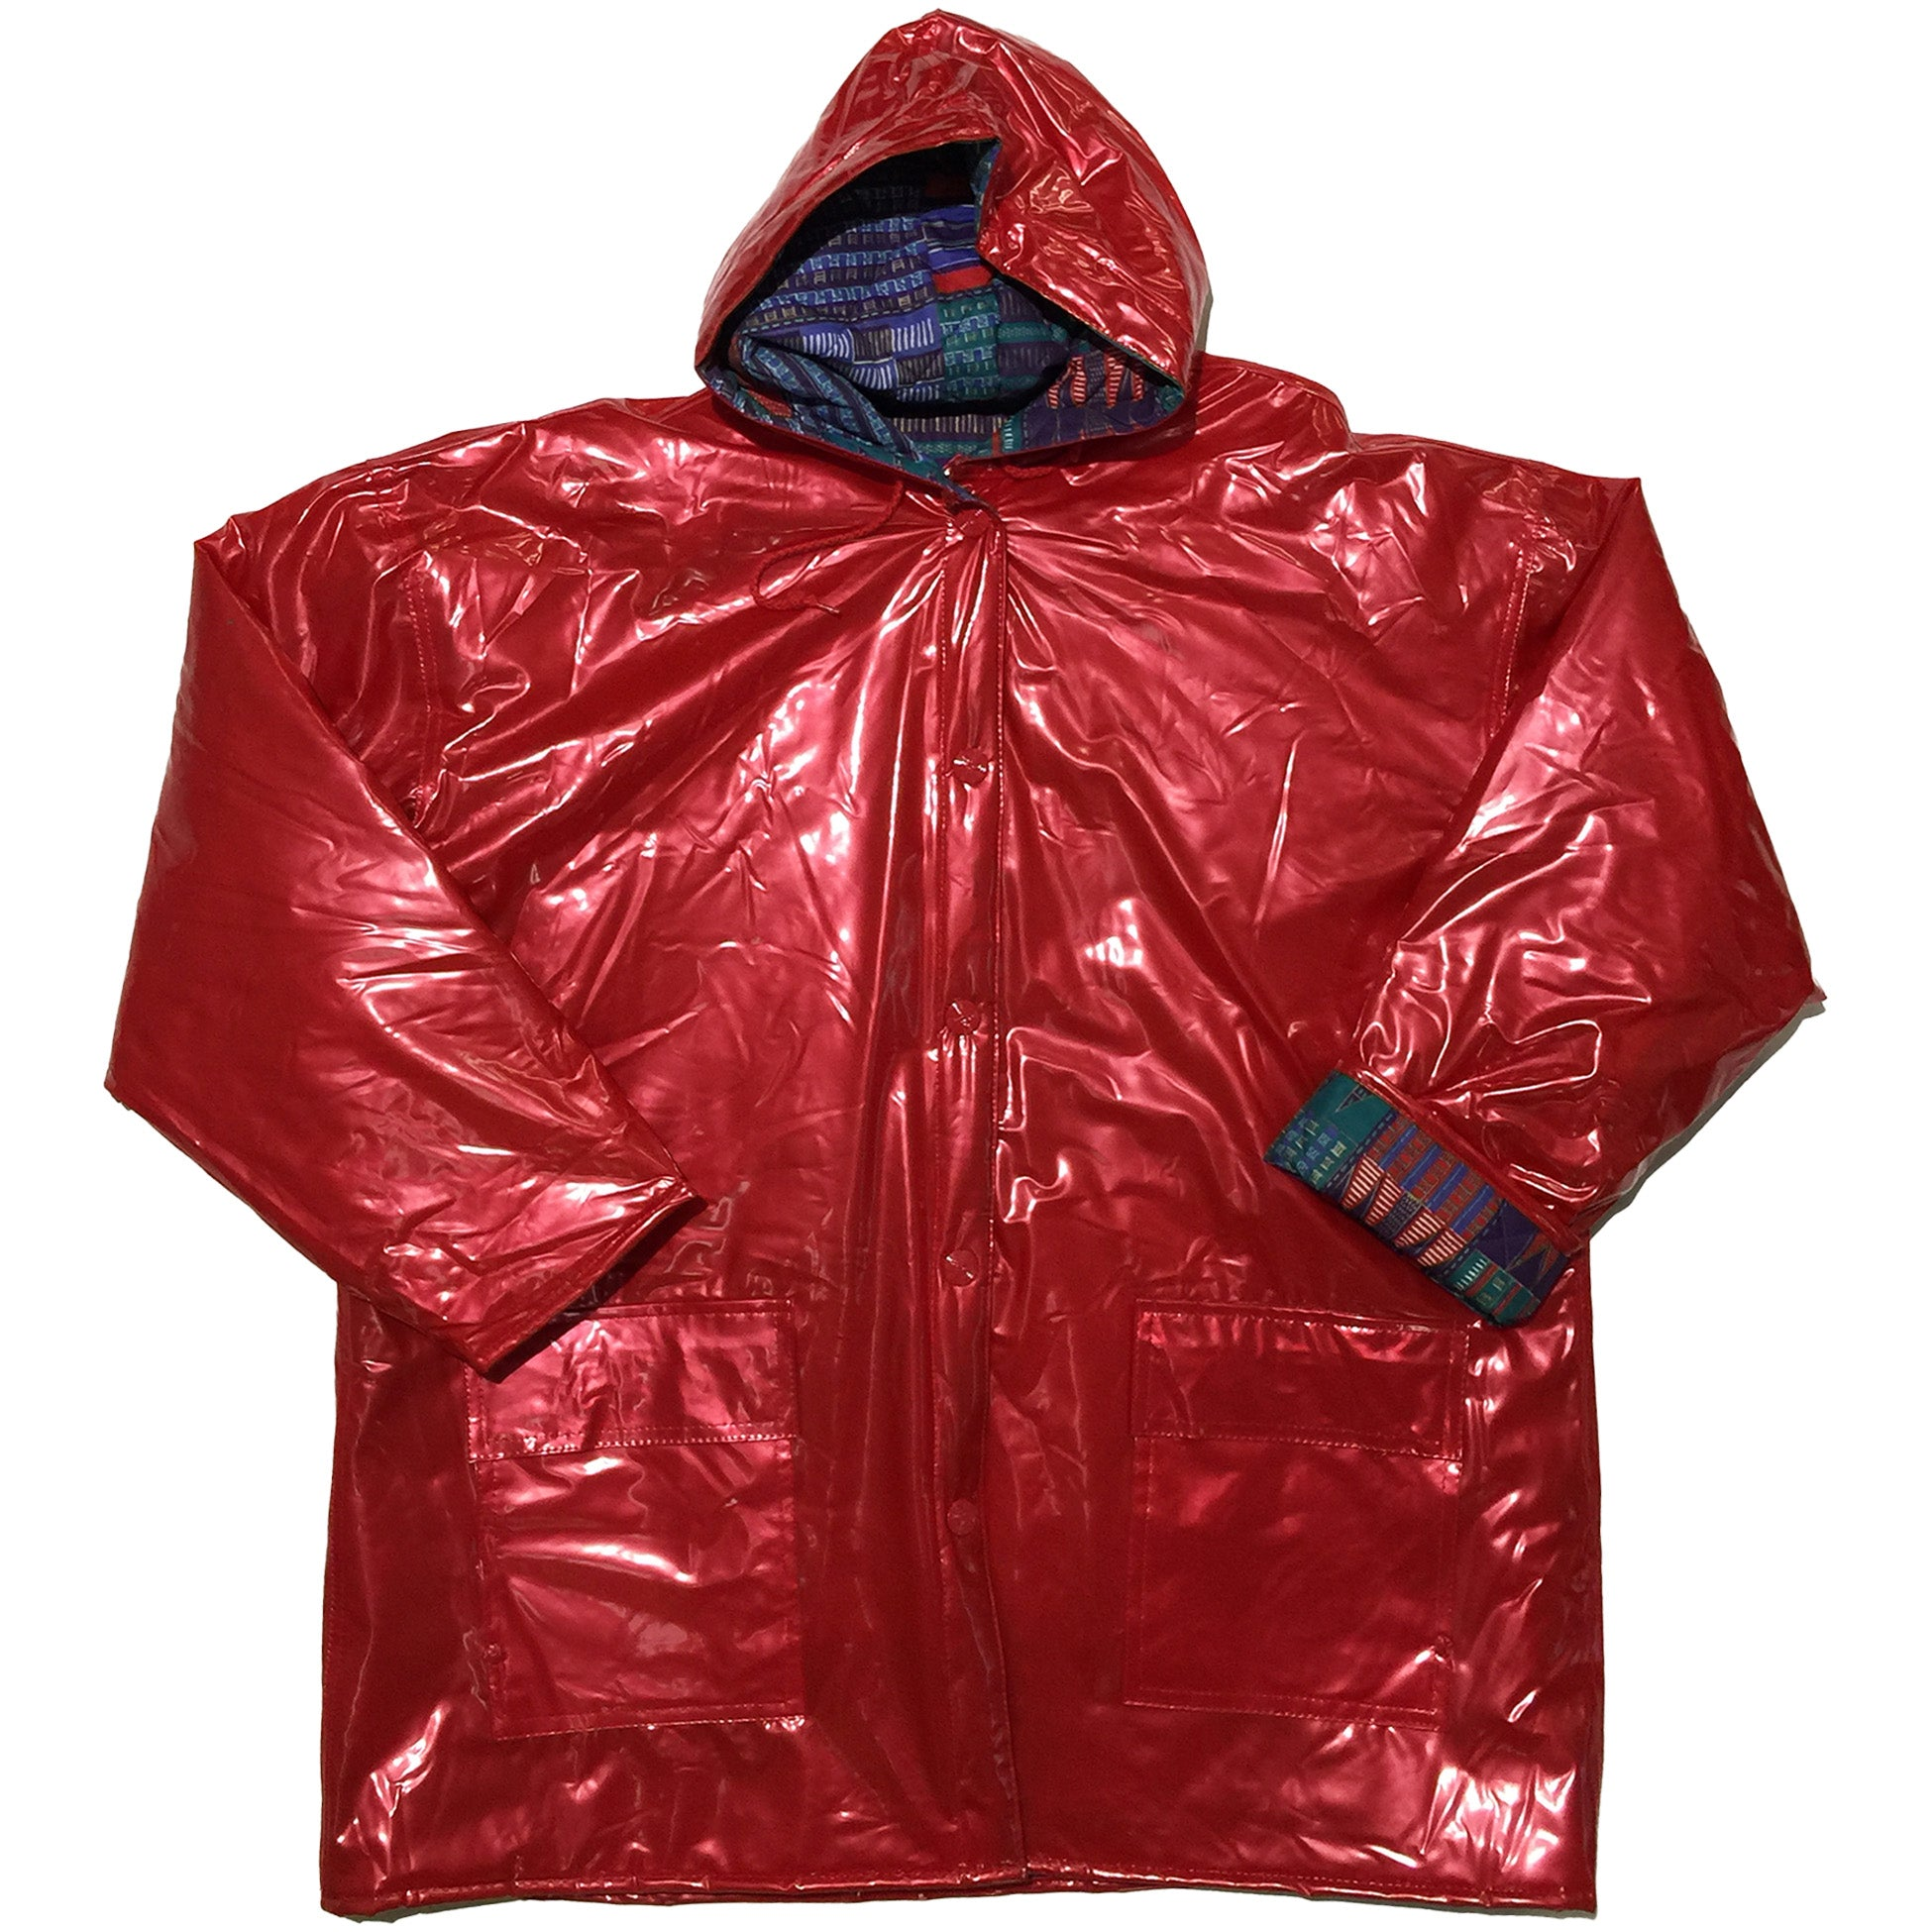 Keiw Sporn Red Plastic Jacket